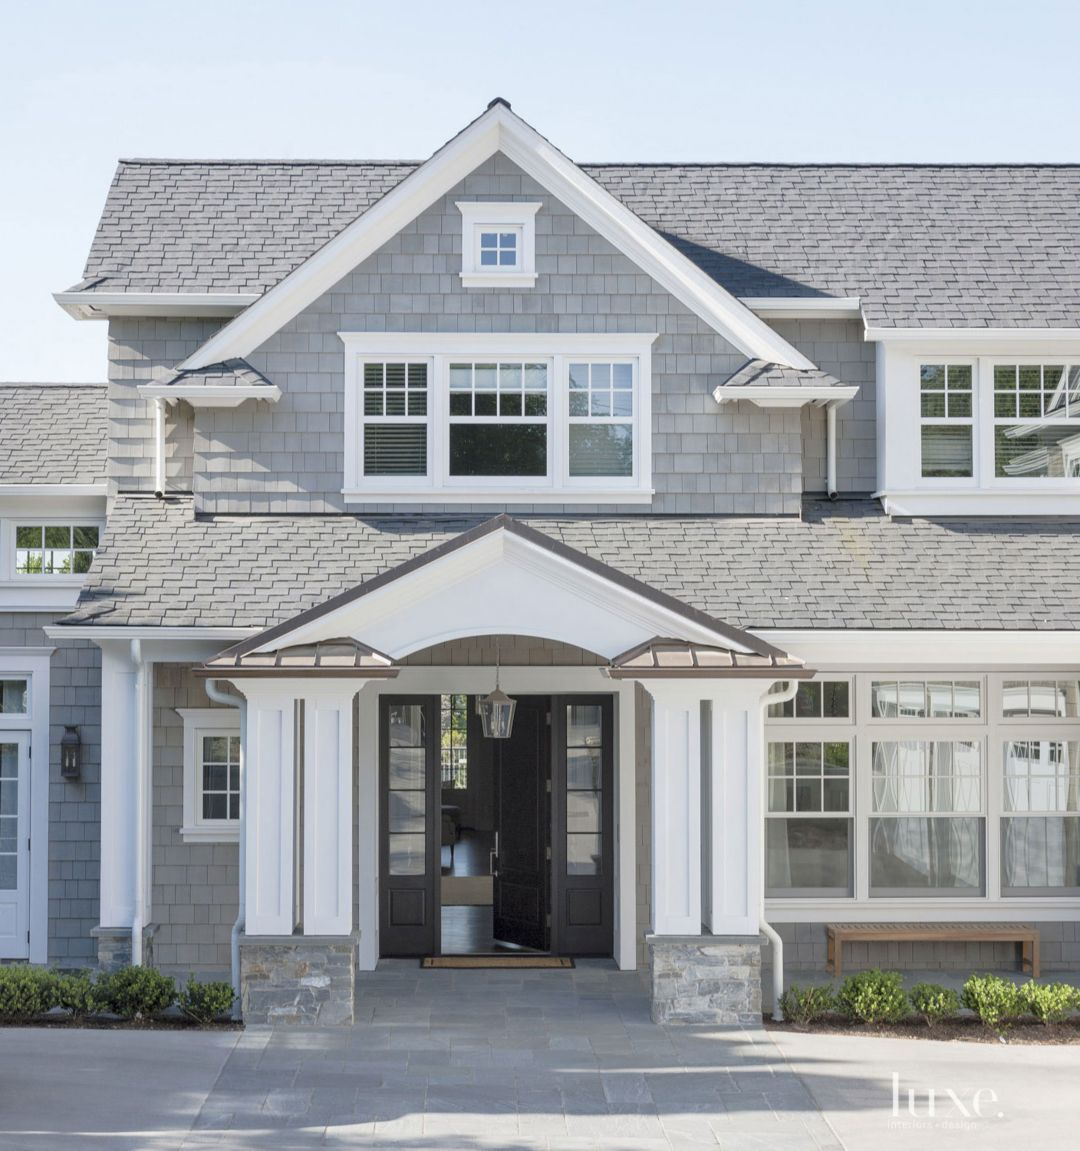 The Home S Shingle Style Exterior Gives A Nod To Traditional East Coast Architecture Gray House Exterior White Exterior Houses Grey Exterior House Colors